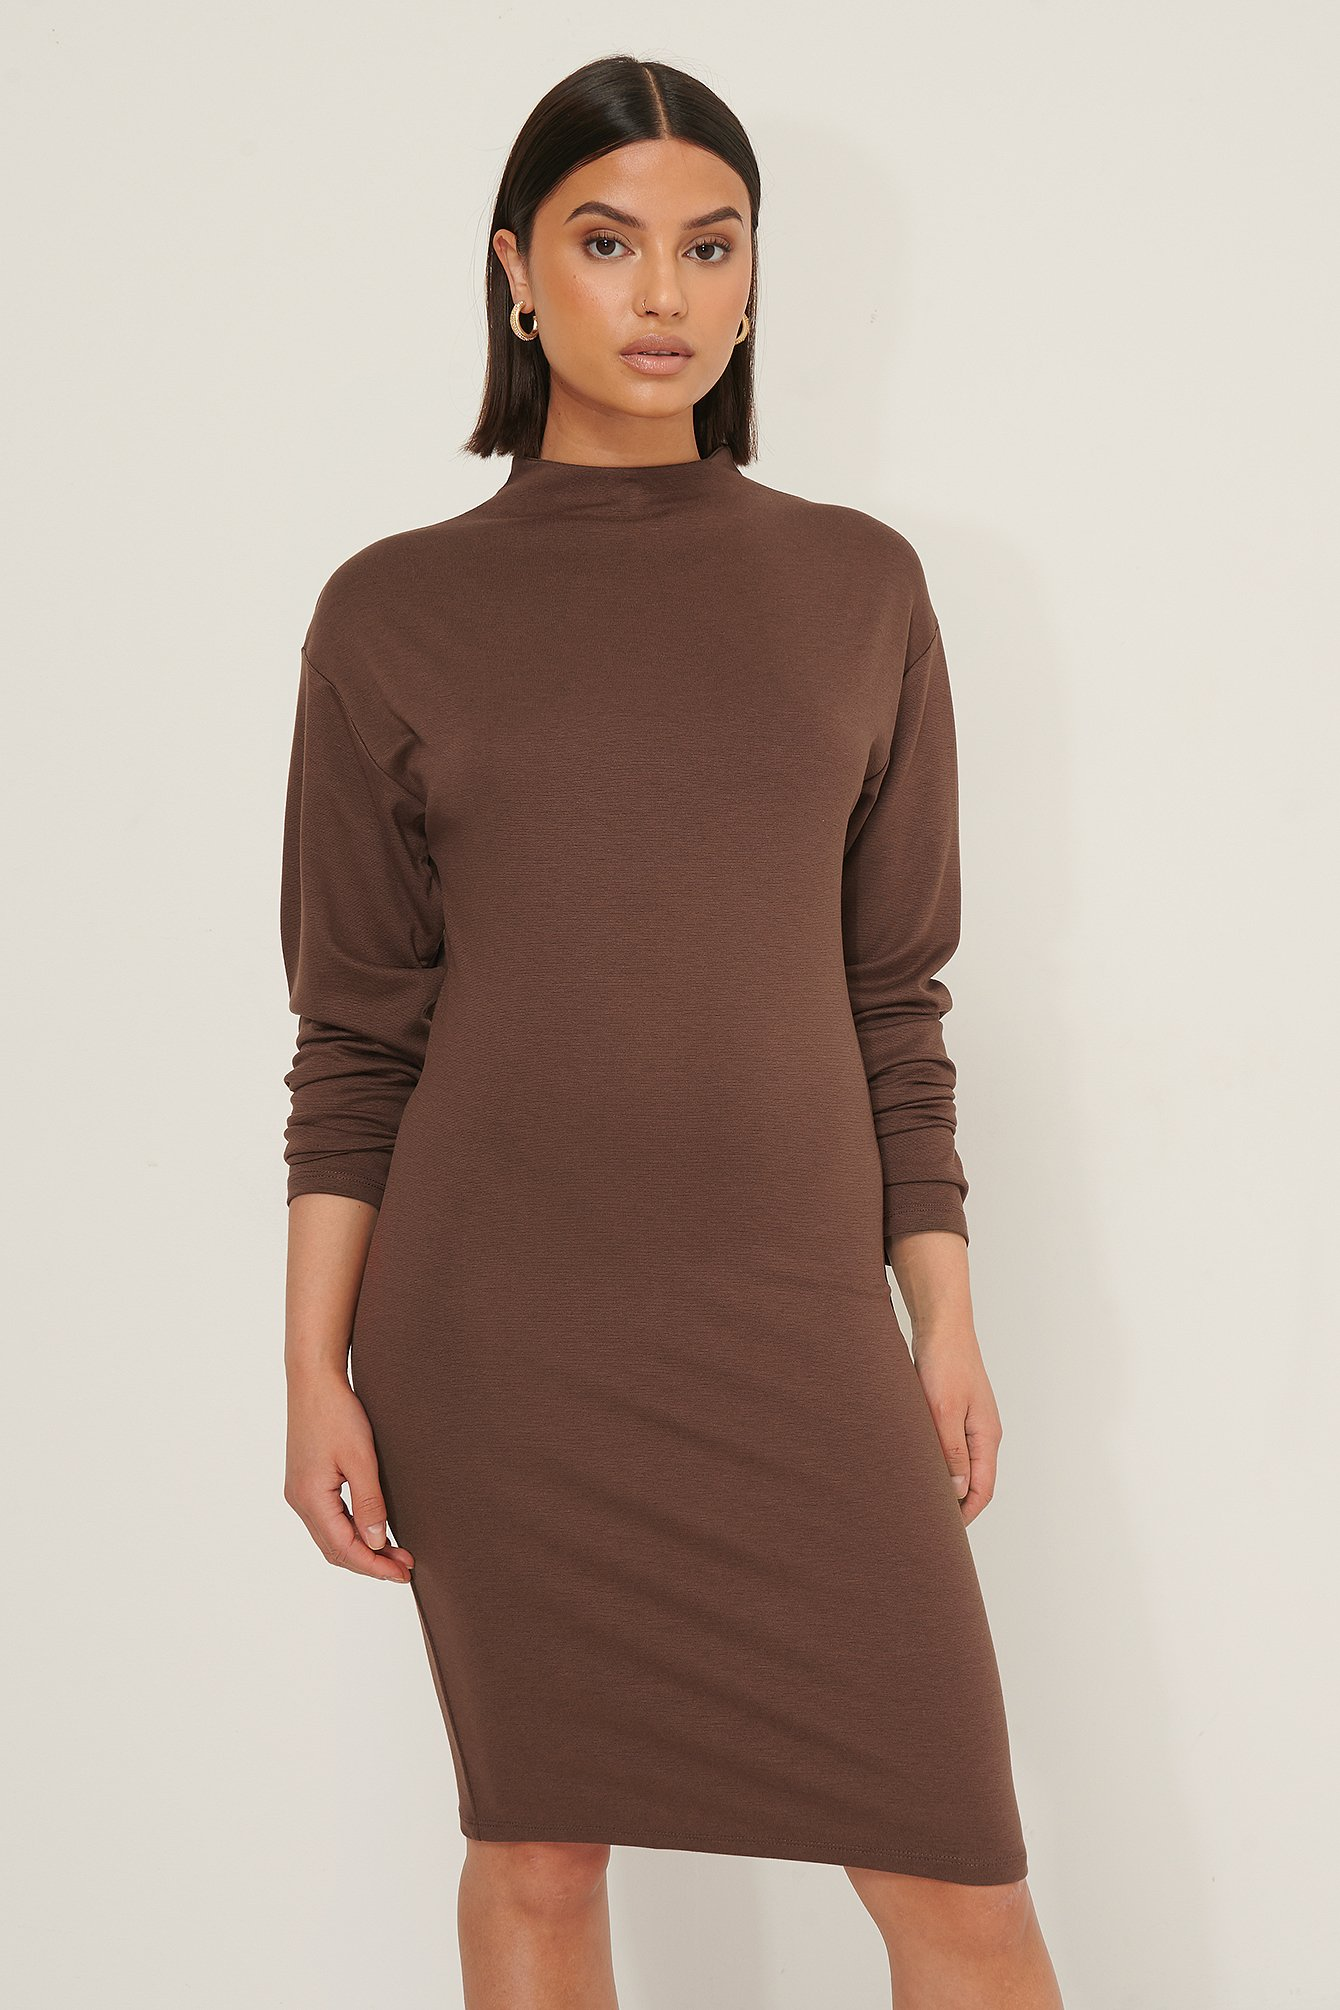 Selma Omari x NA-KD Long Sleeve Jersey Dress - Brown